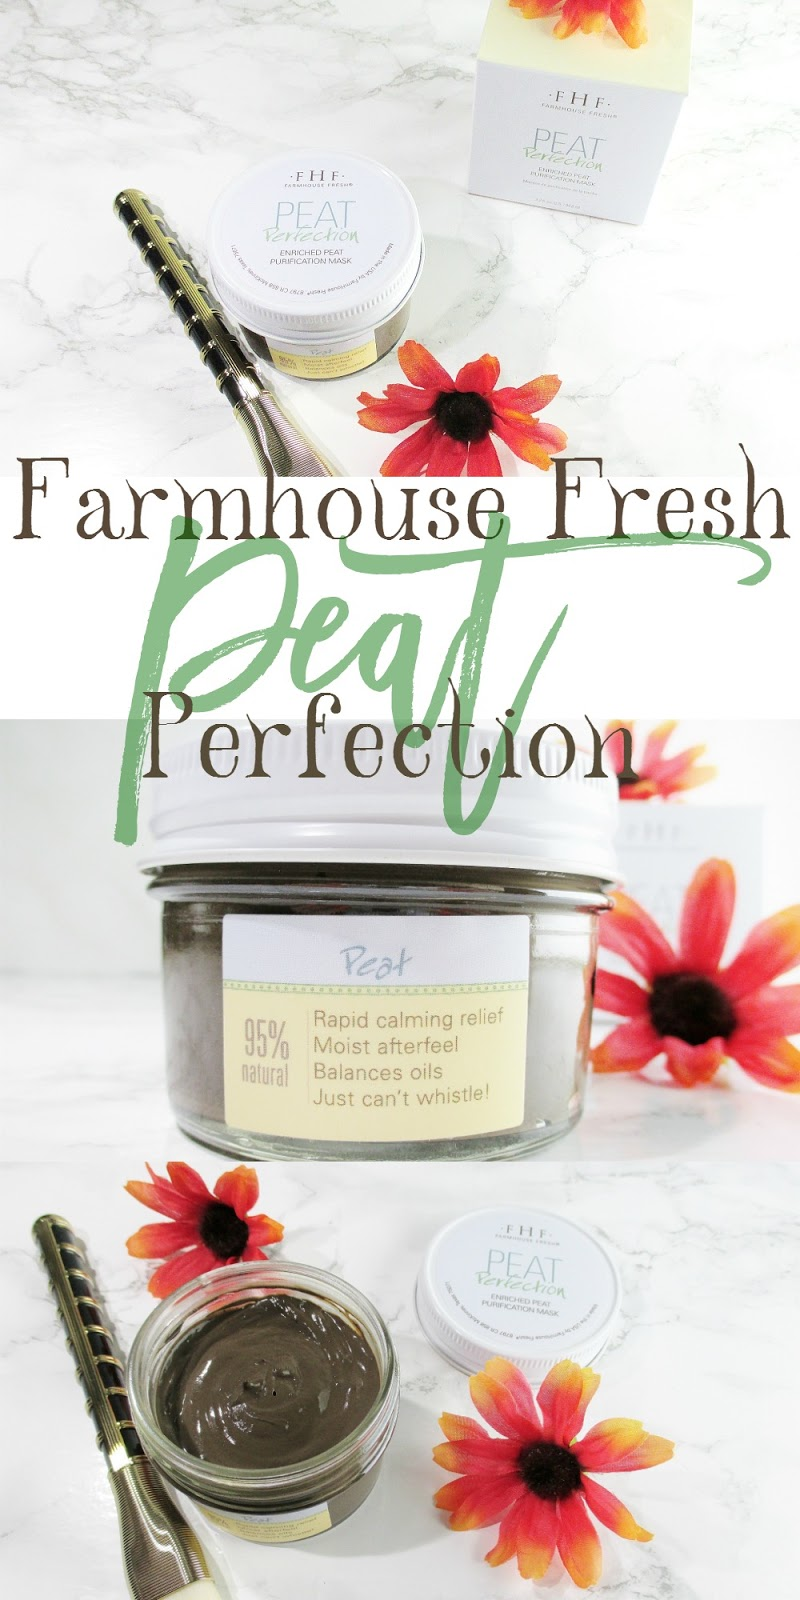 farmhouse-fresh-peat-perfection-mask-4